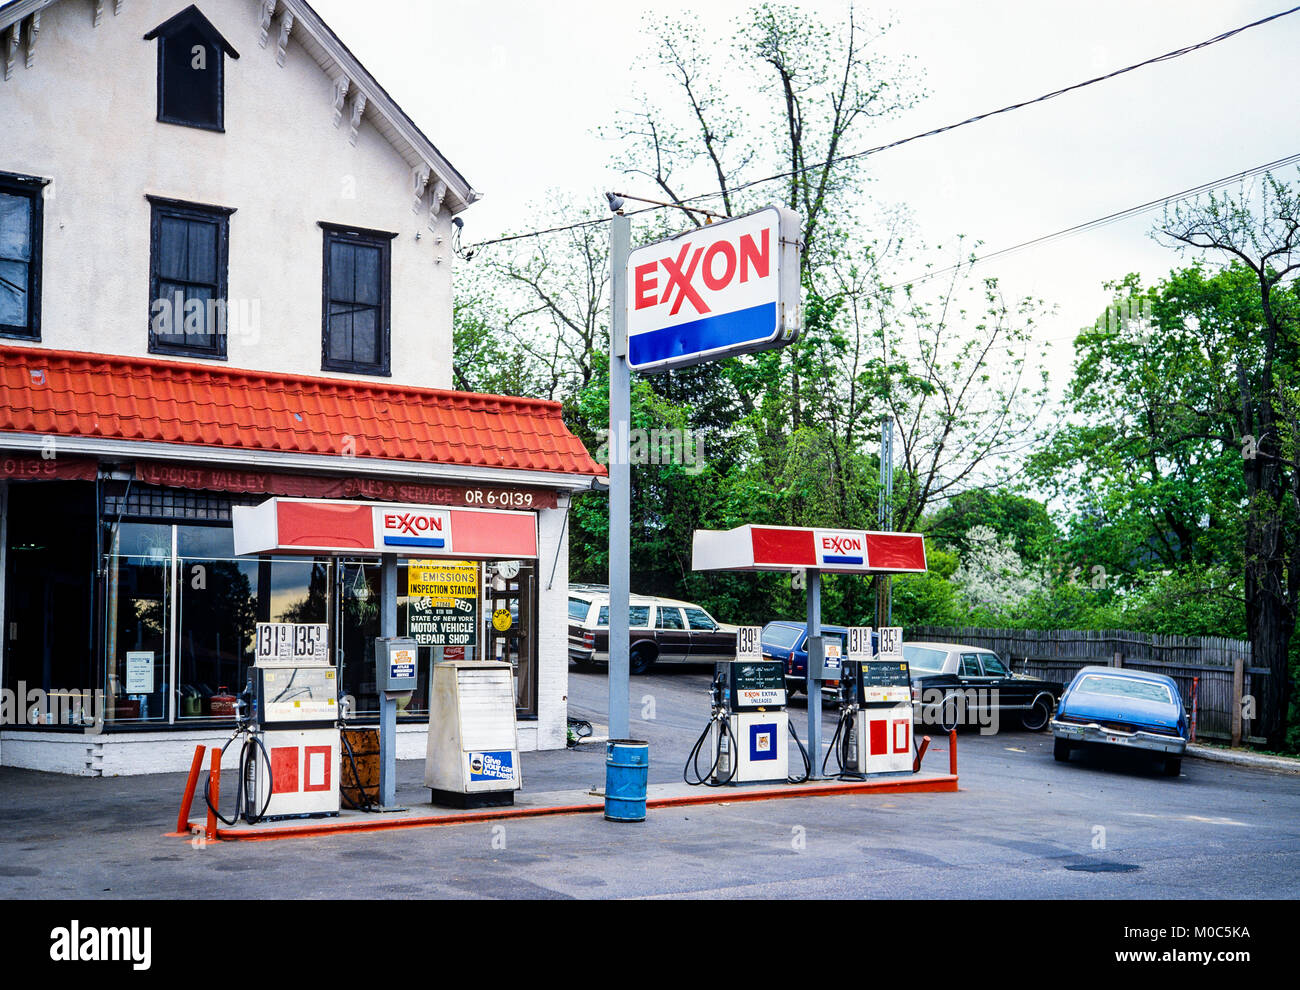 May 1982, Exxon petrol station, pumps, Long Island, New york, NY, USA, - Stock Image